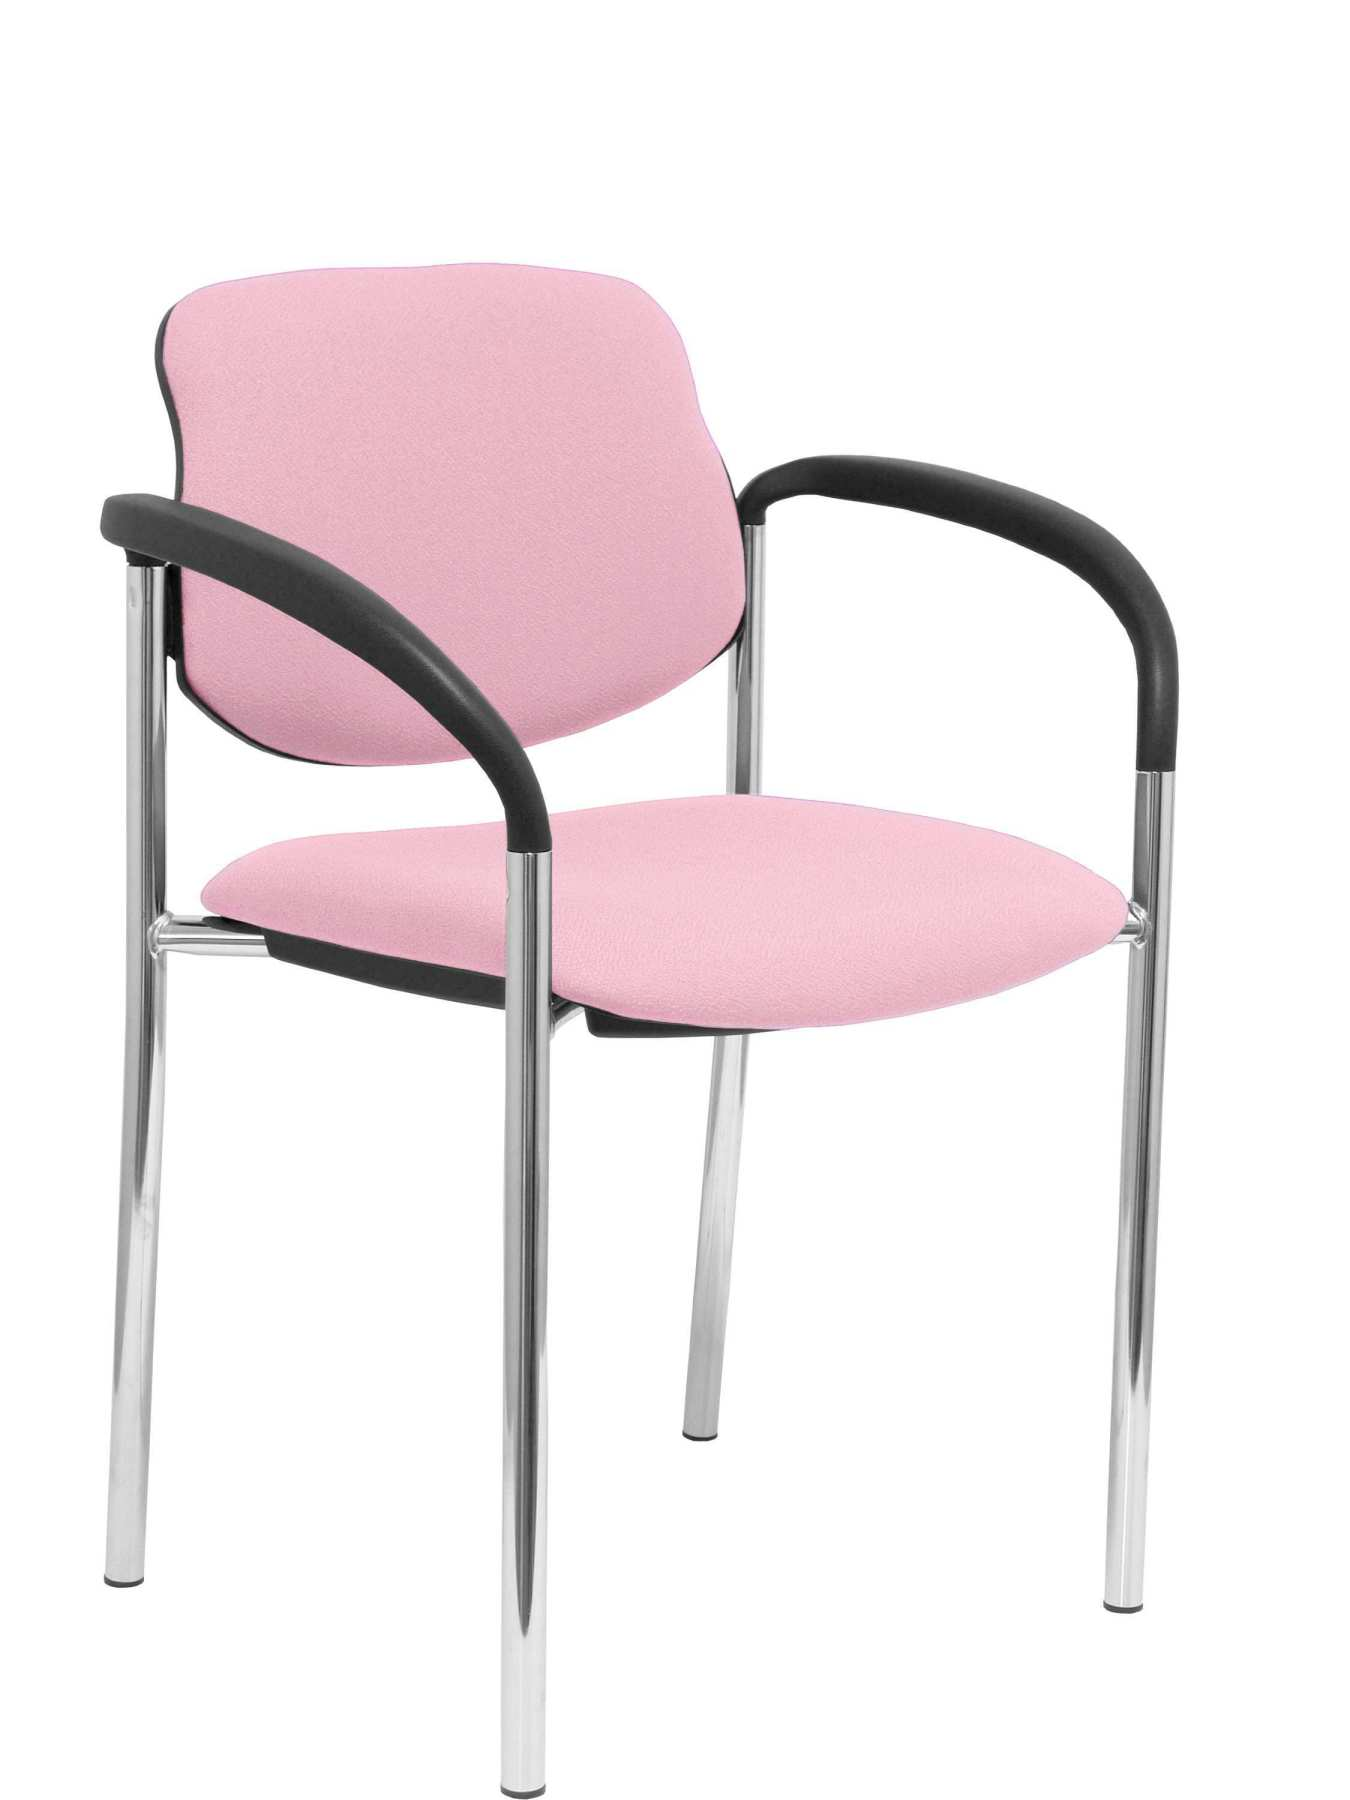 Confident Chair 4-leg And Estructrua Chrome Arms-Seat And Back Upholstered In Fabric BALI Pink PIQ